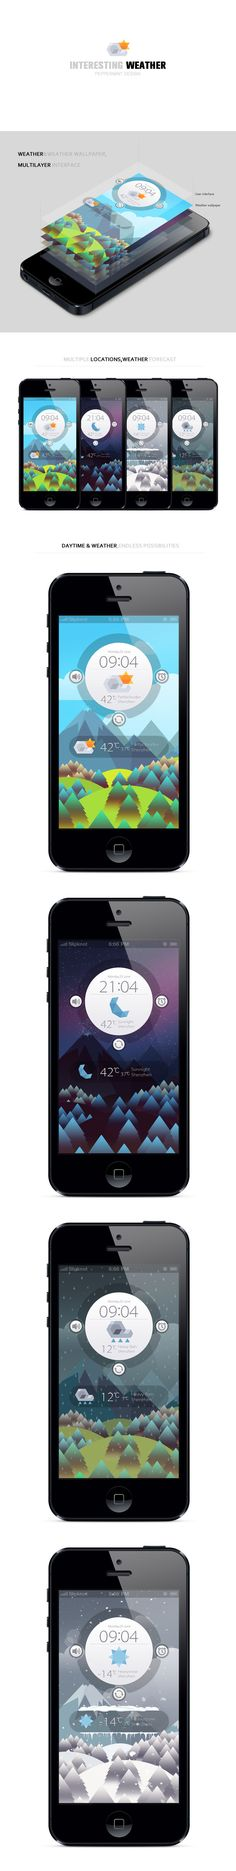 a really interesting weather app - from the UI and art direction pov